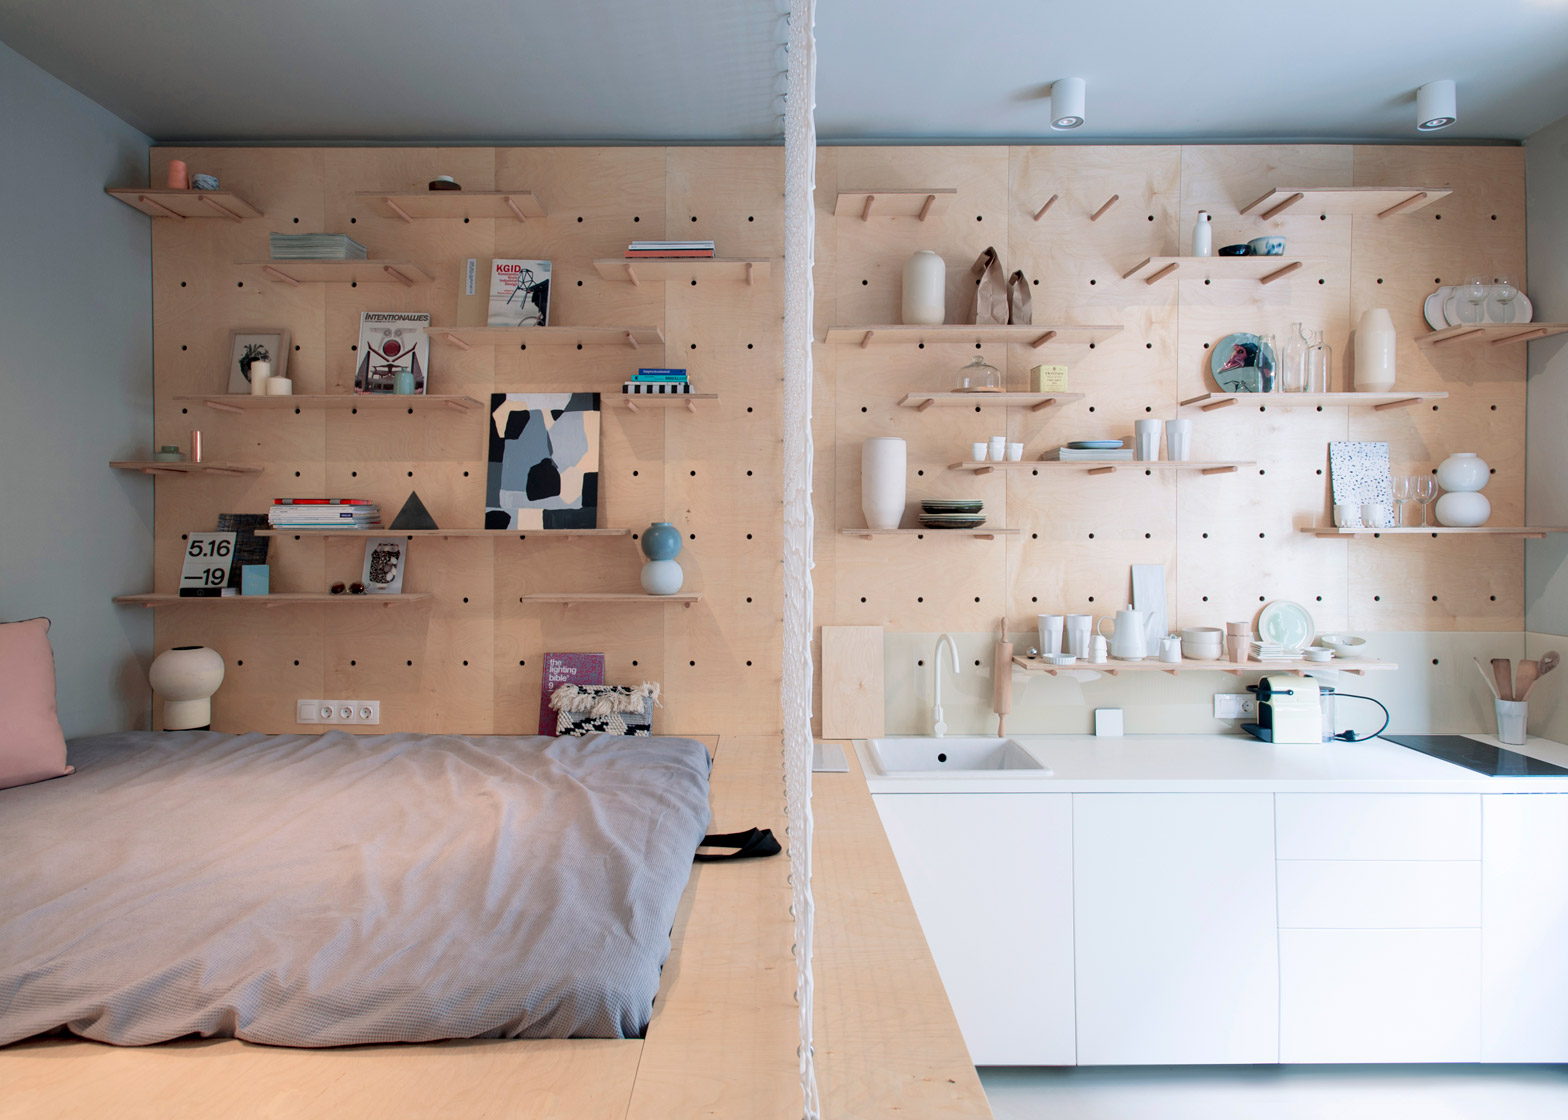 Air-BnP-home_Position-Collective_small-aparment_Budapest_Hungary_plywood_Balazs-Glodi_dezeen_1568_4